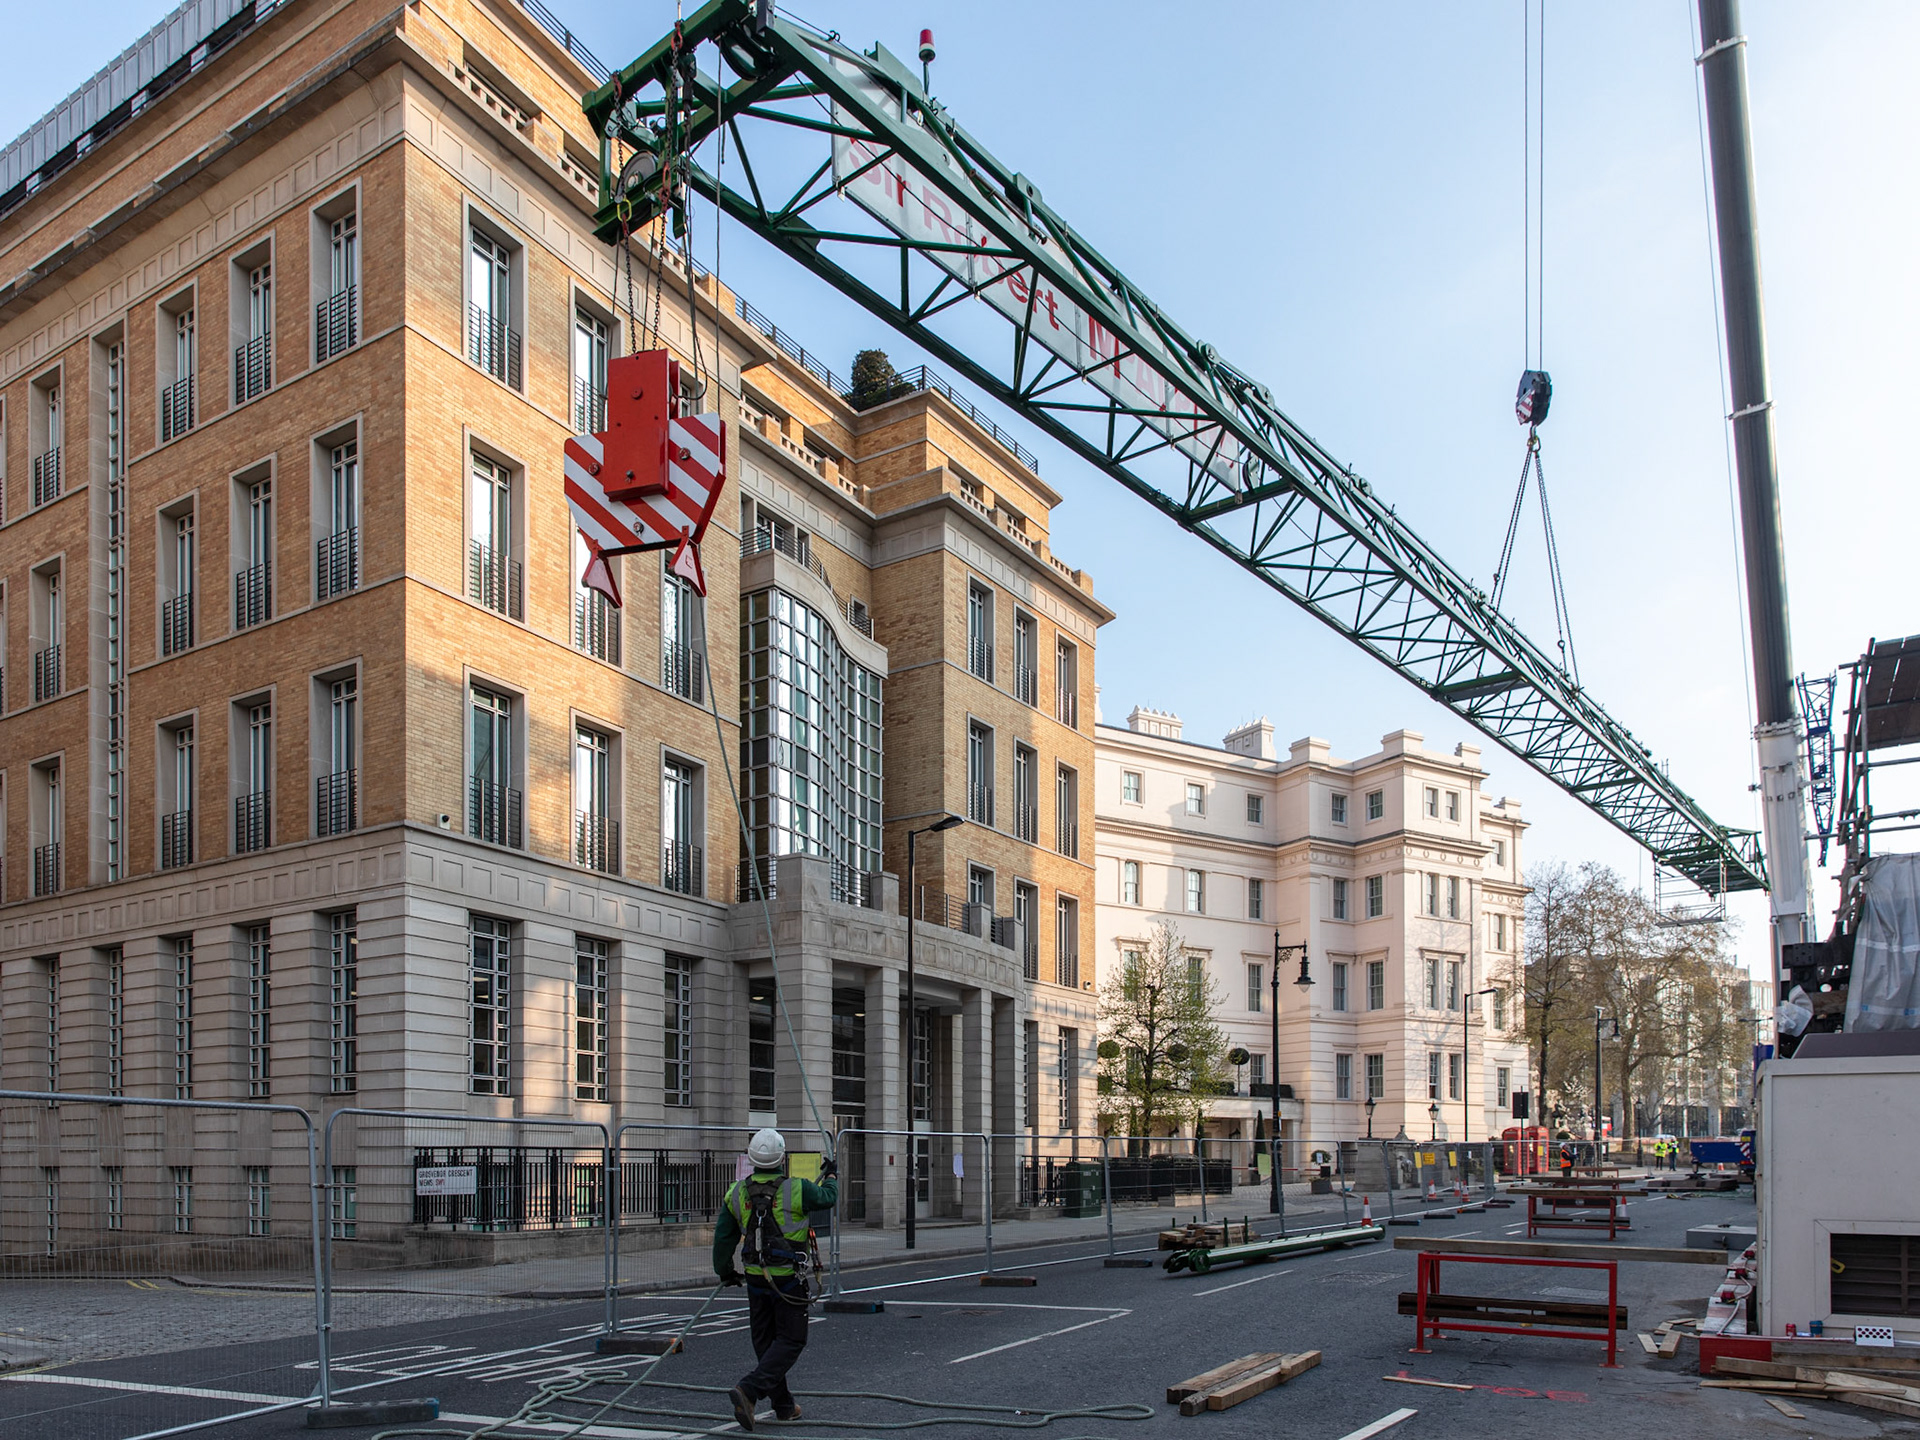 Commercial Photography at Industrial Tower Cranes crane gets lifted into place in central London